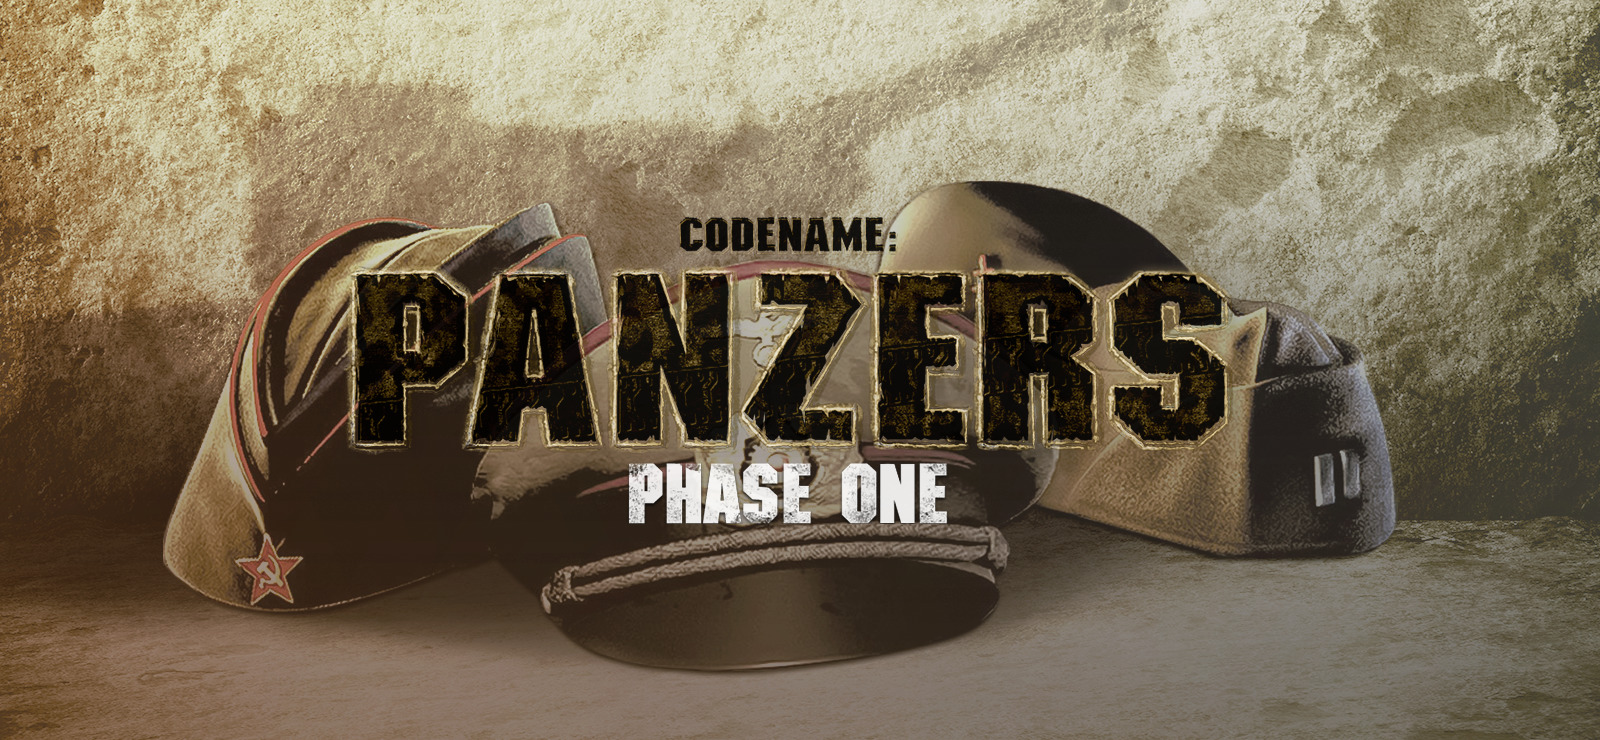 #Codename: Panzers - Phase 1